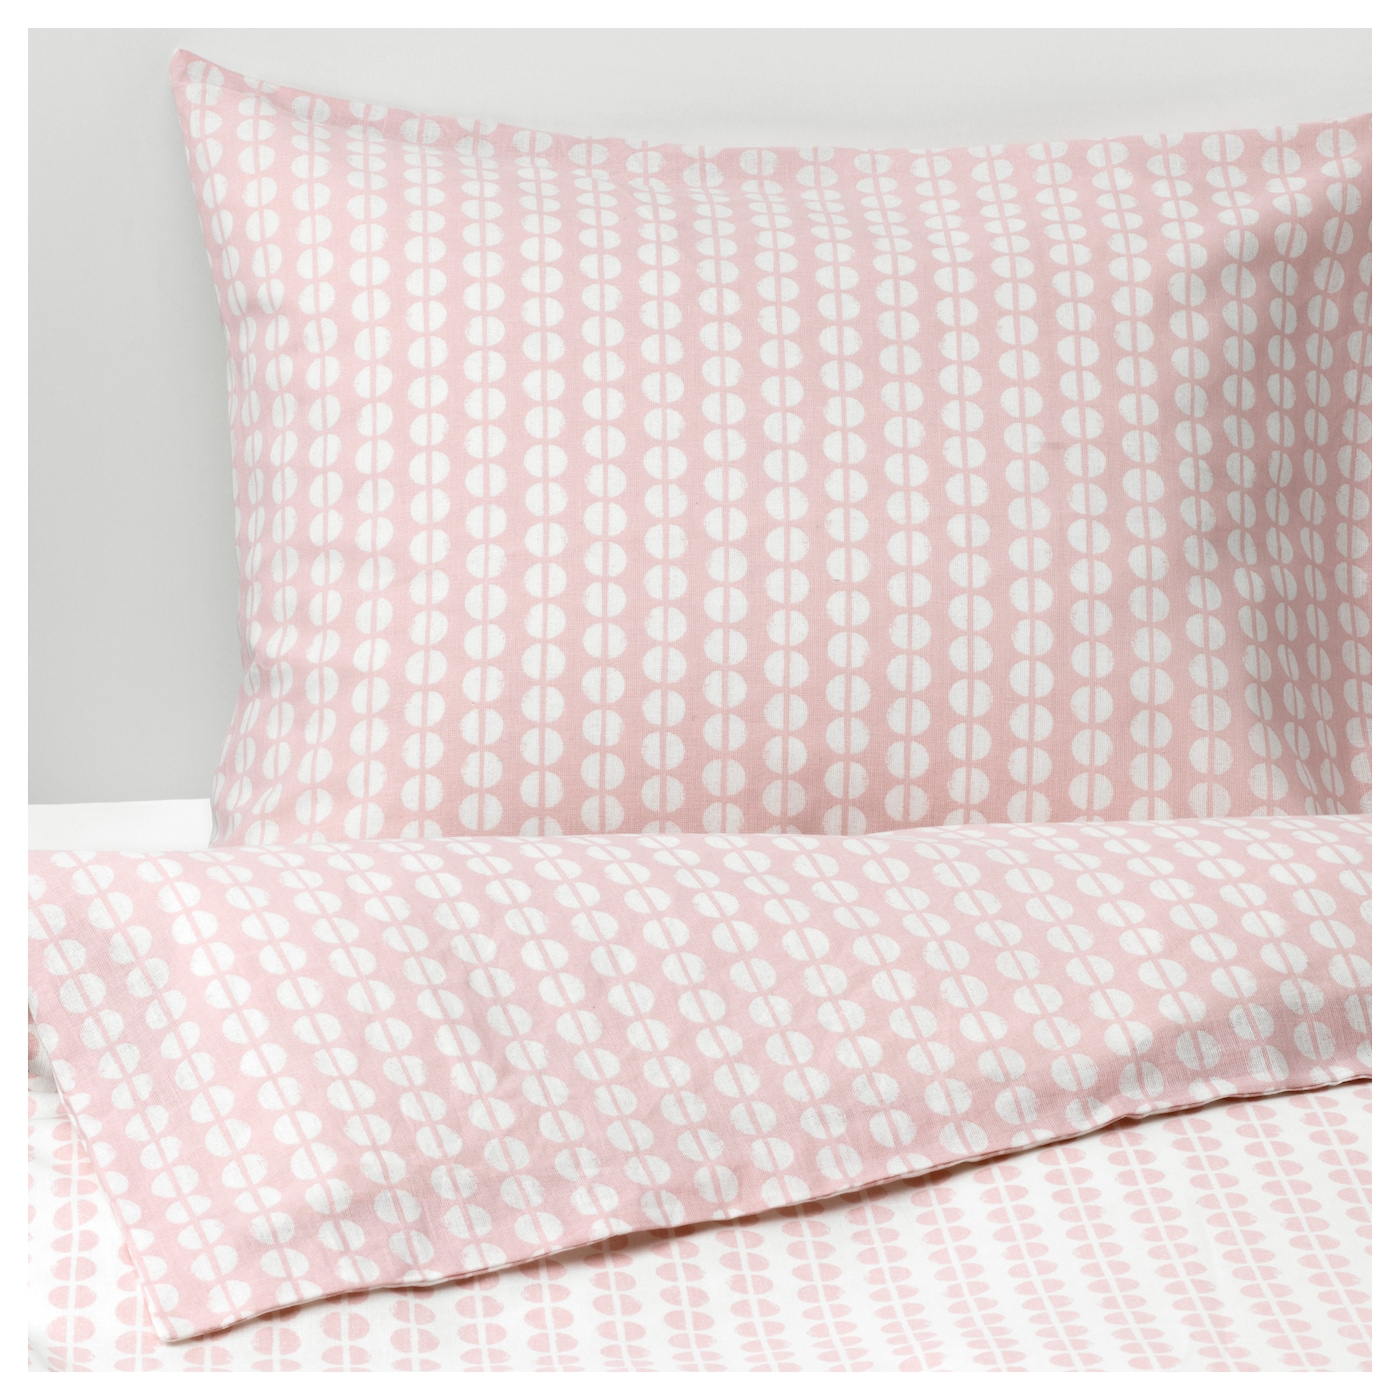 Fj llvedel quilt cover and 2 pillowcases pink 240x220 for Draps housse ikea